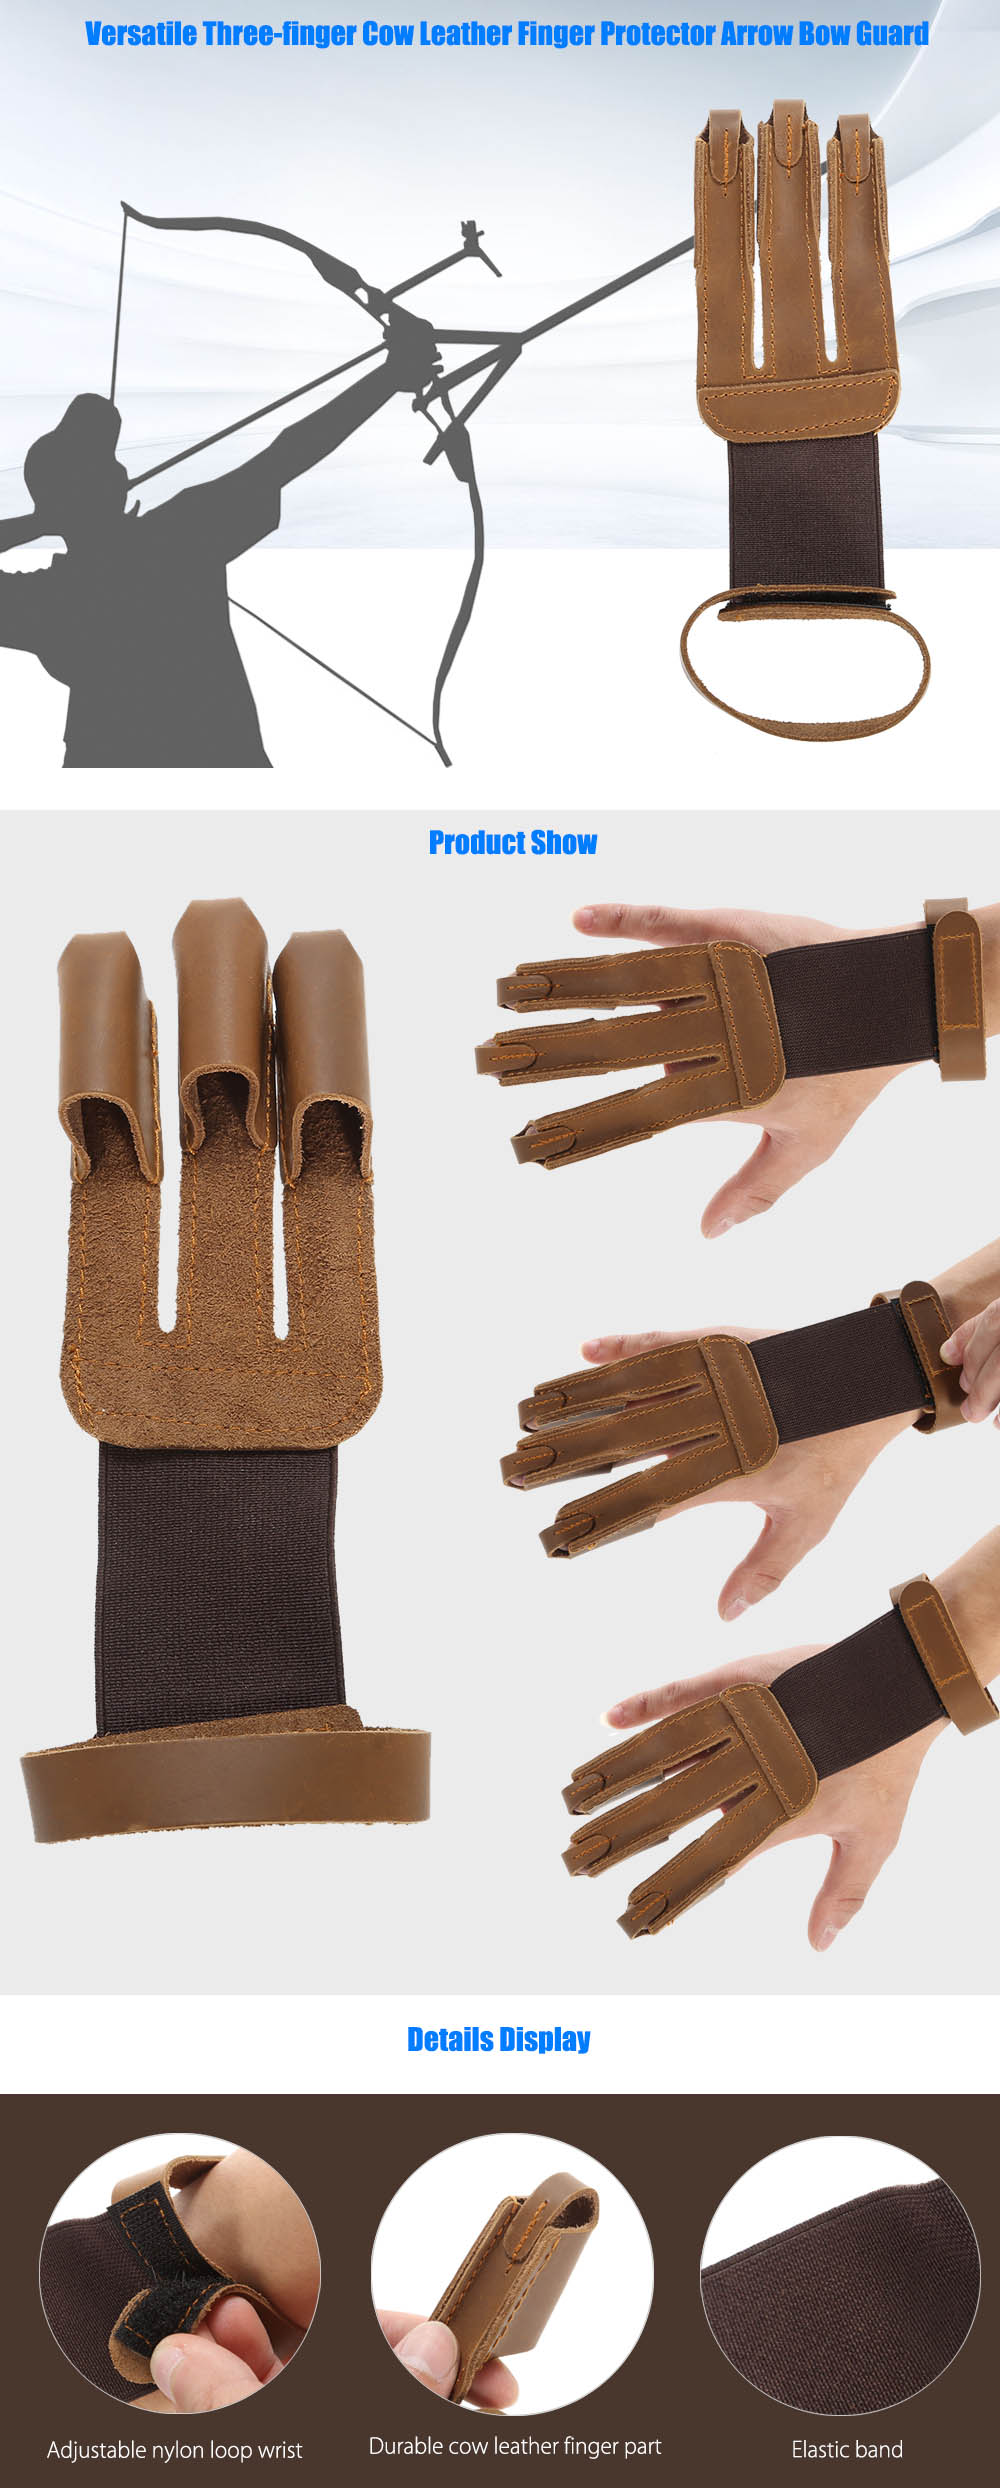 Versatile Three-finger Cow Leather Finger Protector Arrow Bow Guard Shooting Accessories